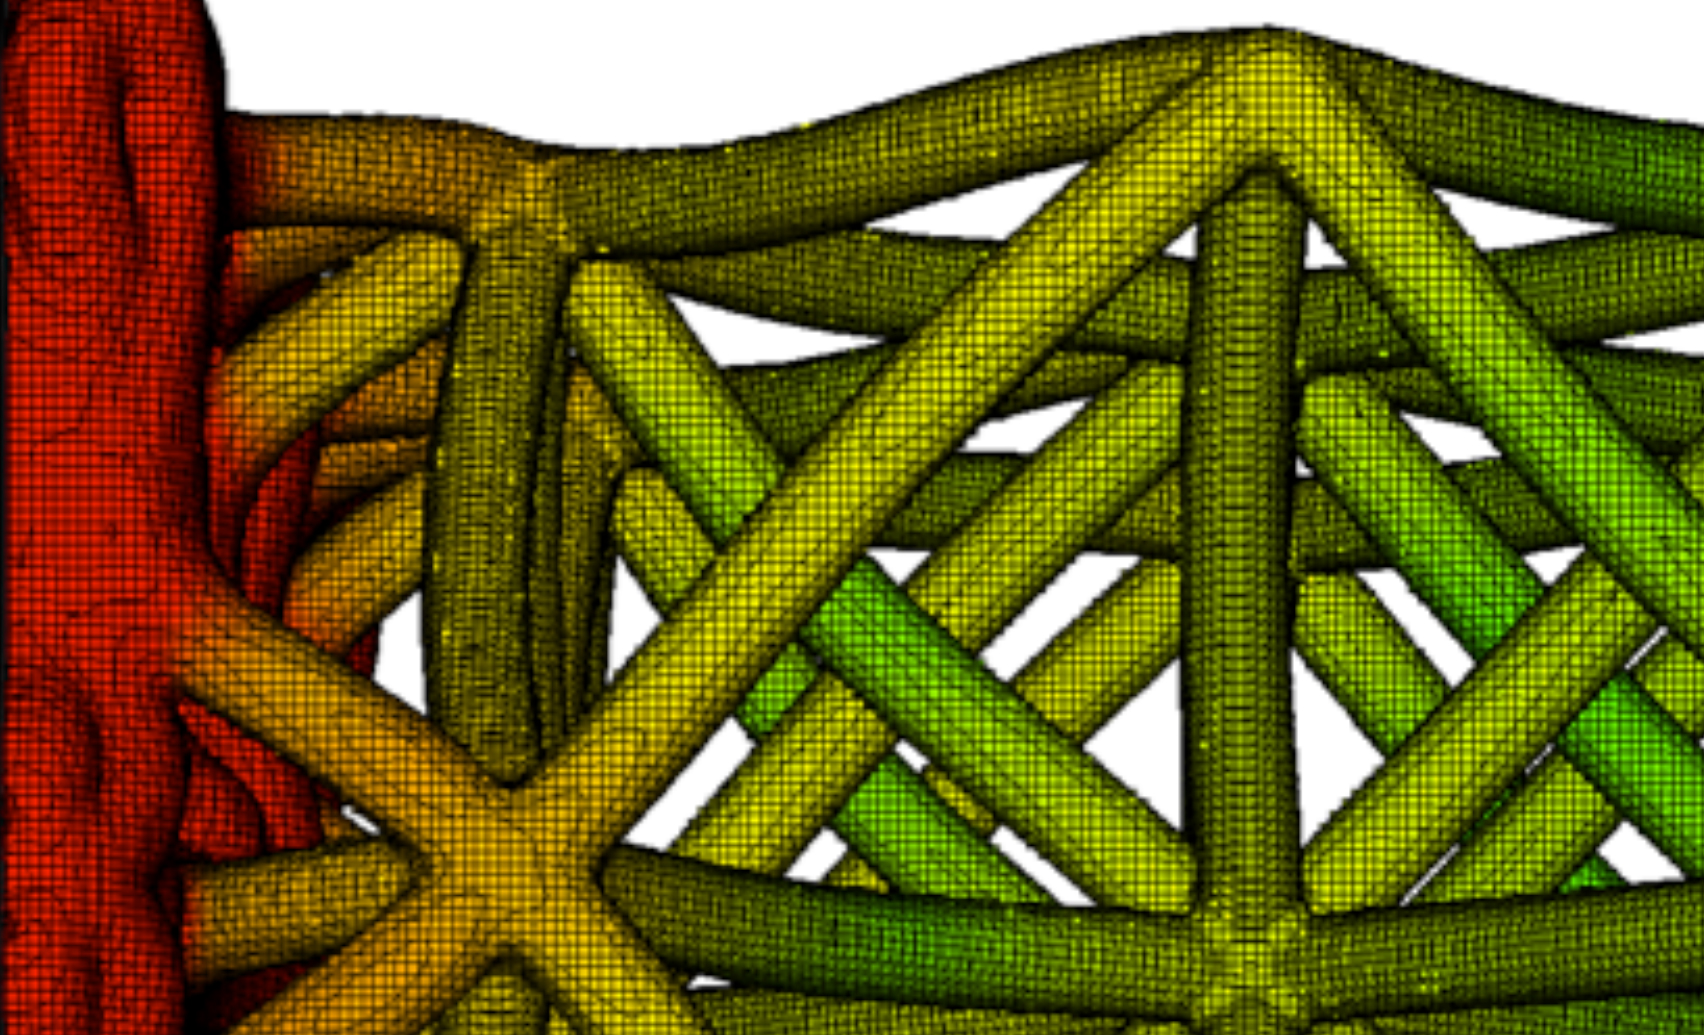 Putting Pressure on 3-D-printed Structures